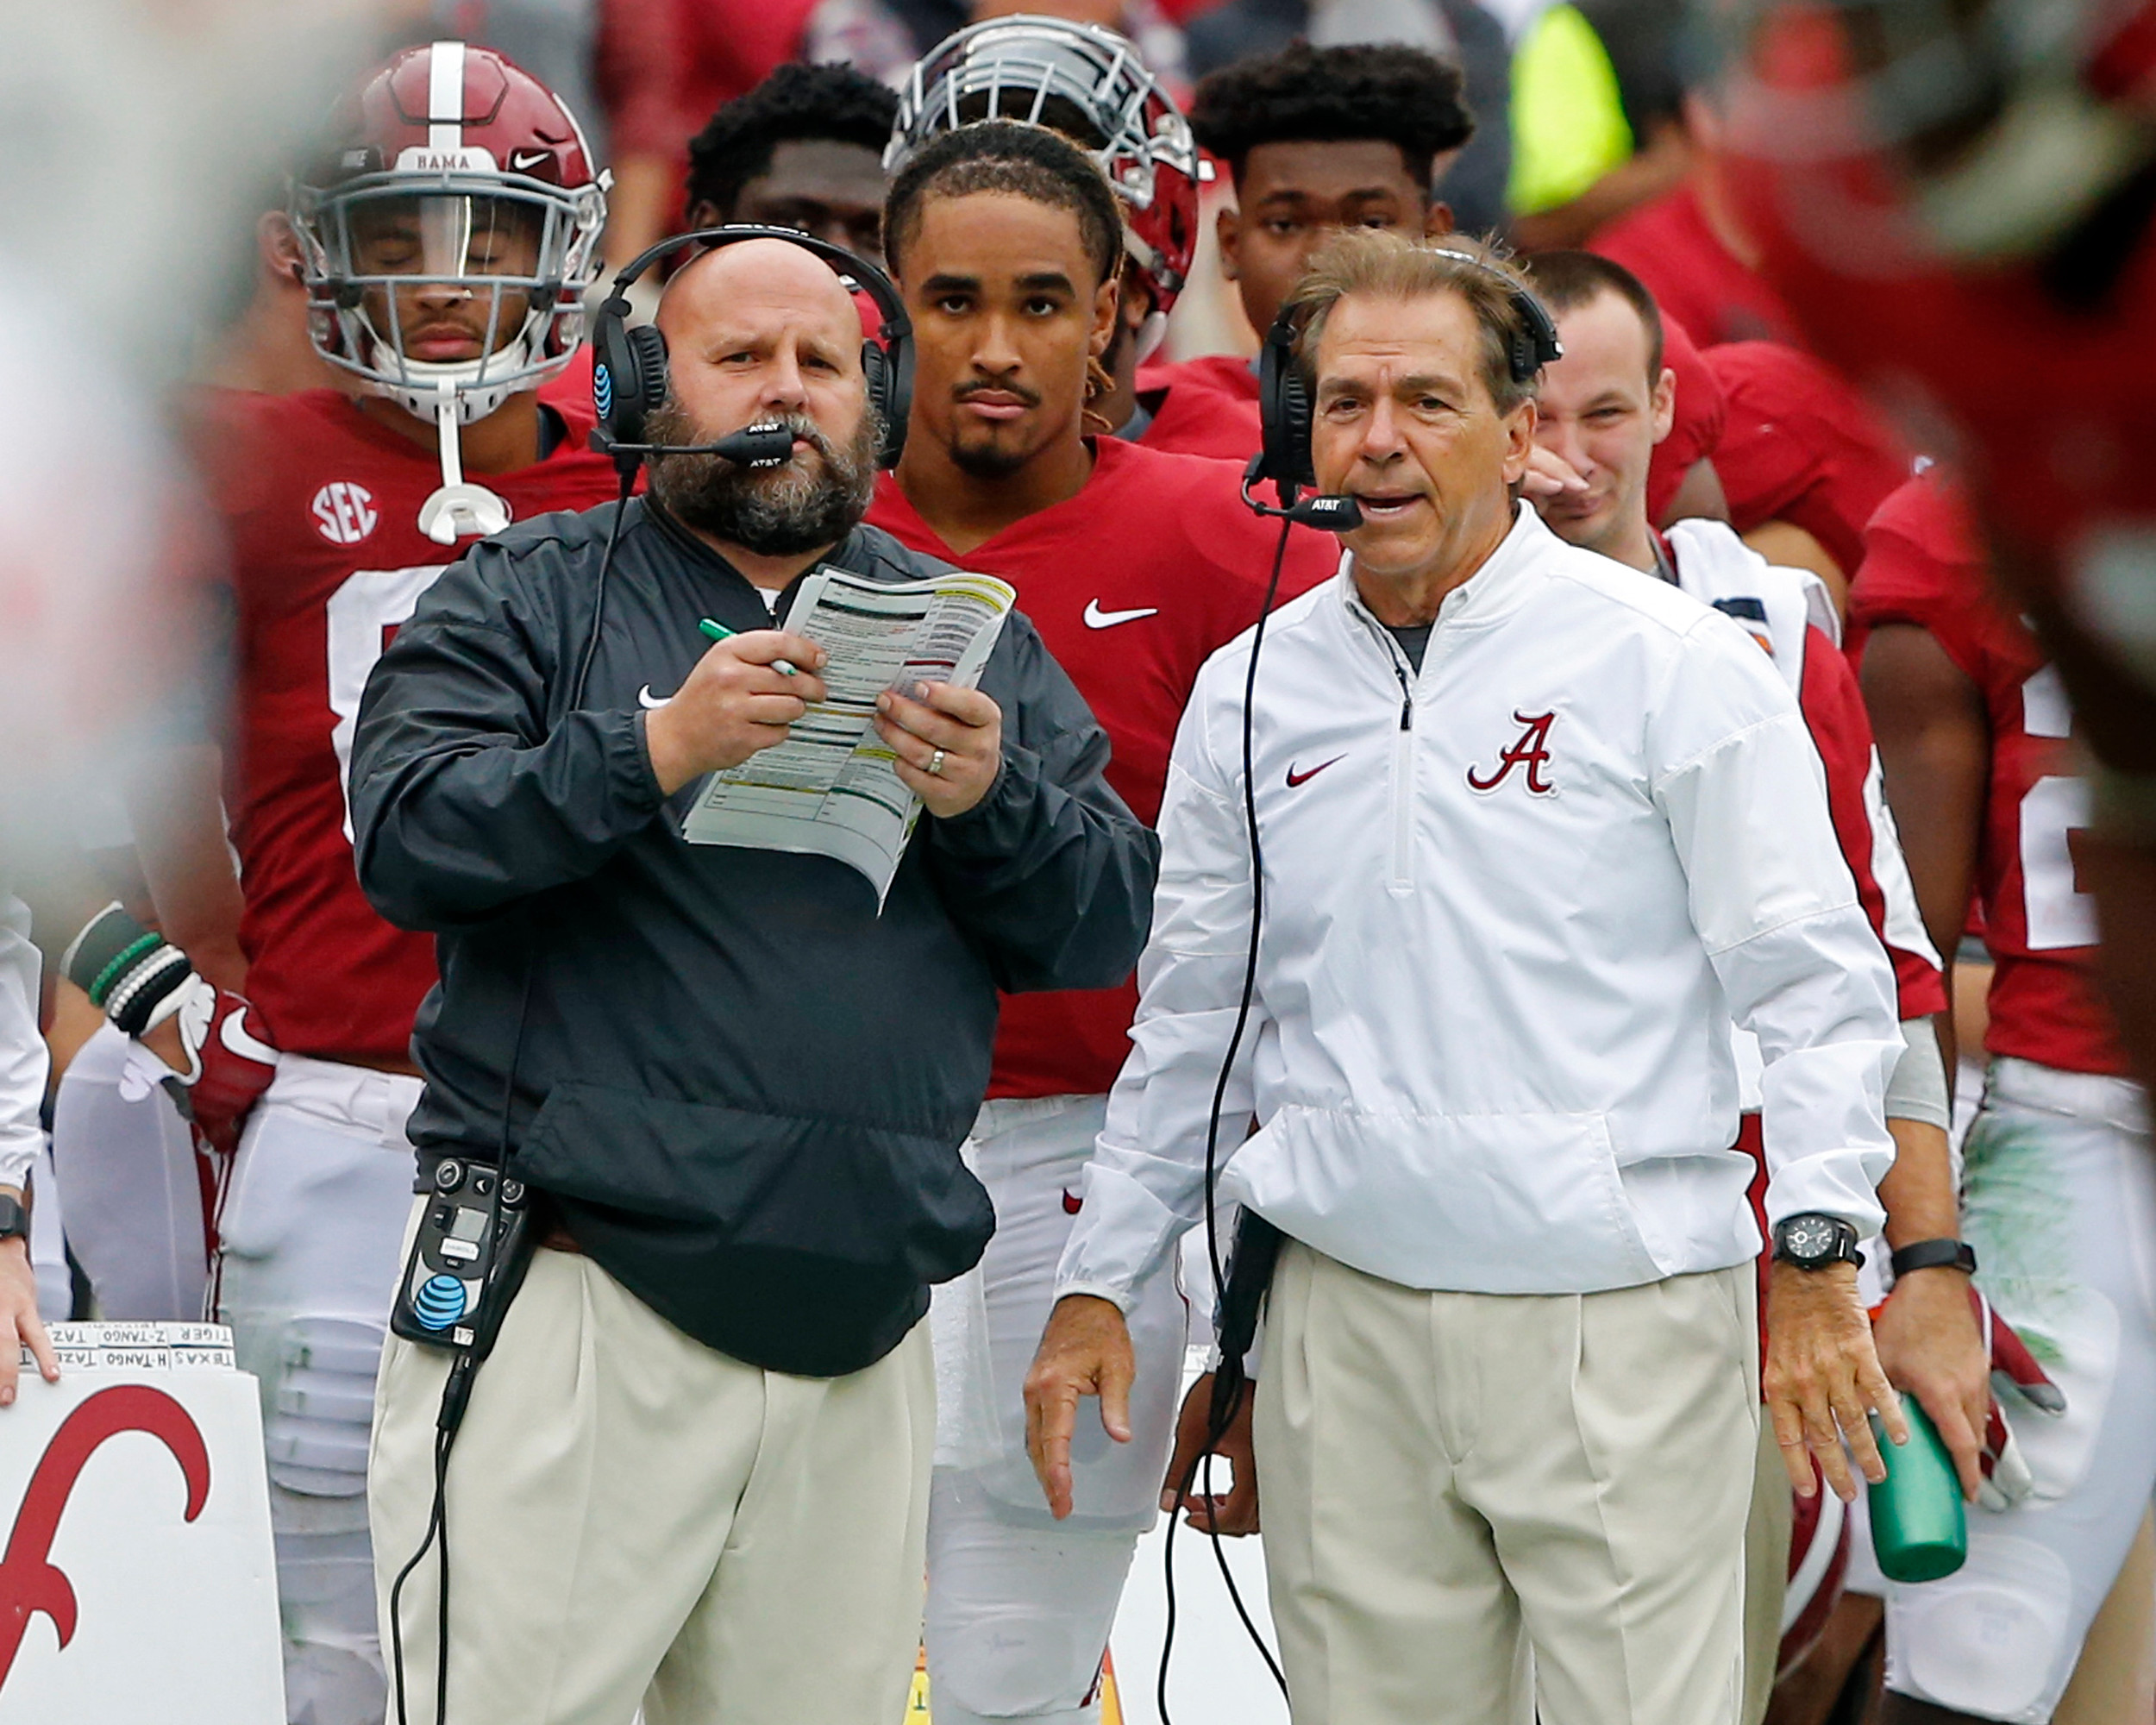 Saban speaks with Offensive Coordinator Bryan Dabol during the 1st half of the game between the Mercer Bears and the University of Alabama Crimson Tide at Bryant-Denny Stadium in Tuscaloosa, Al on 11/18/2017.